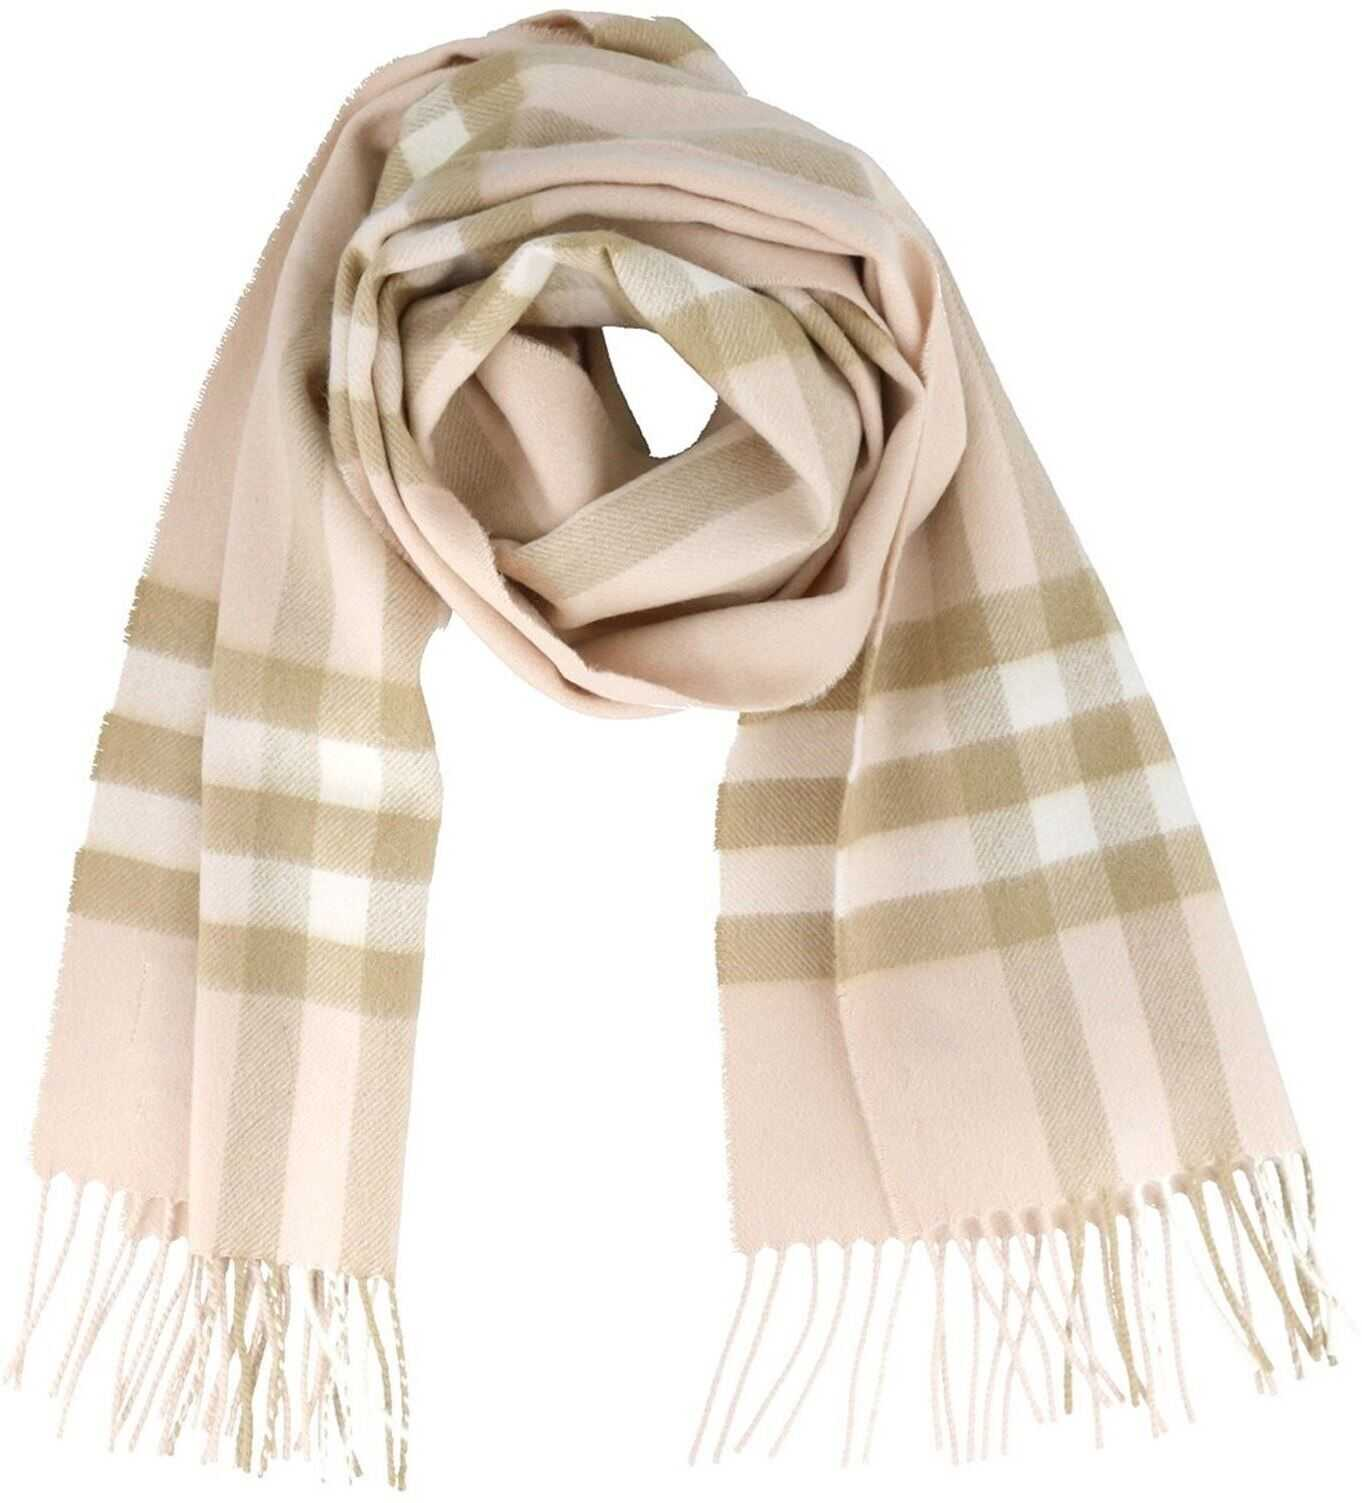 Burberry Giant Check Cashmere Scarf Beige